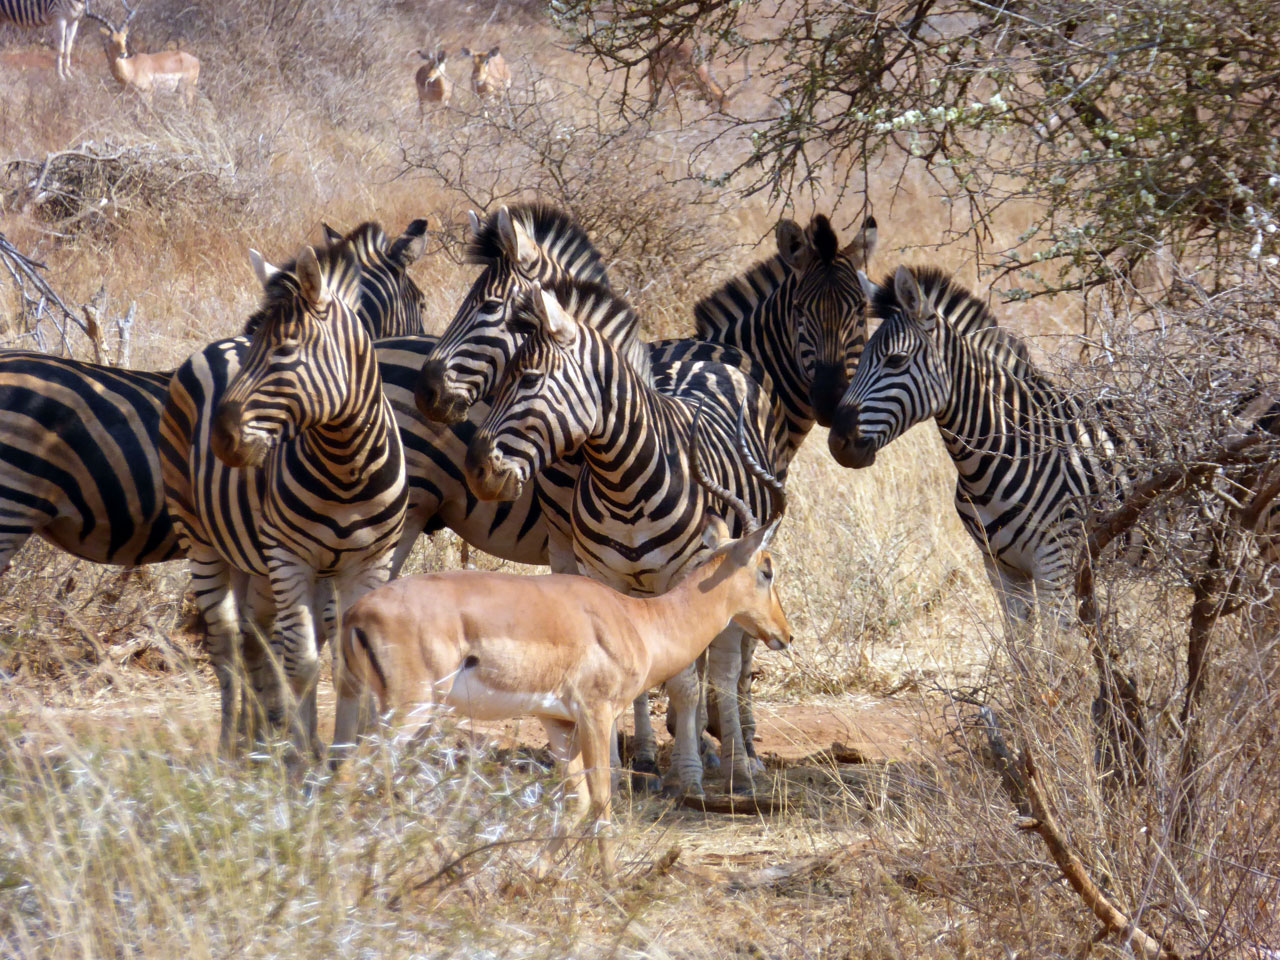 Zebras and impalas in Madikwe Game Reserve, South Africa